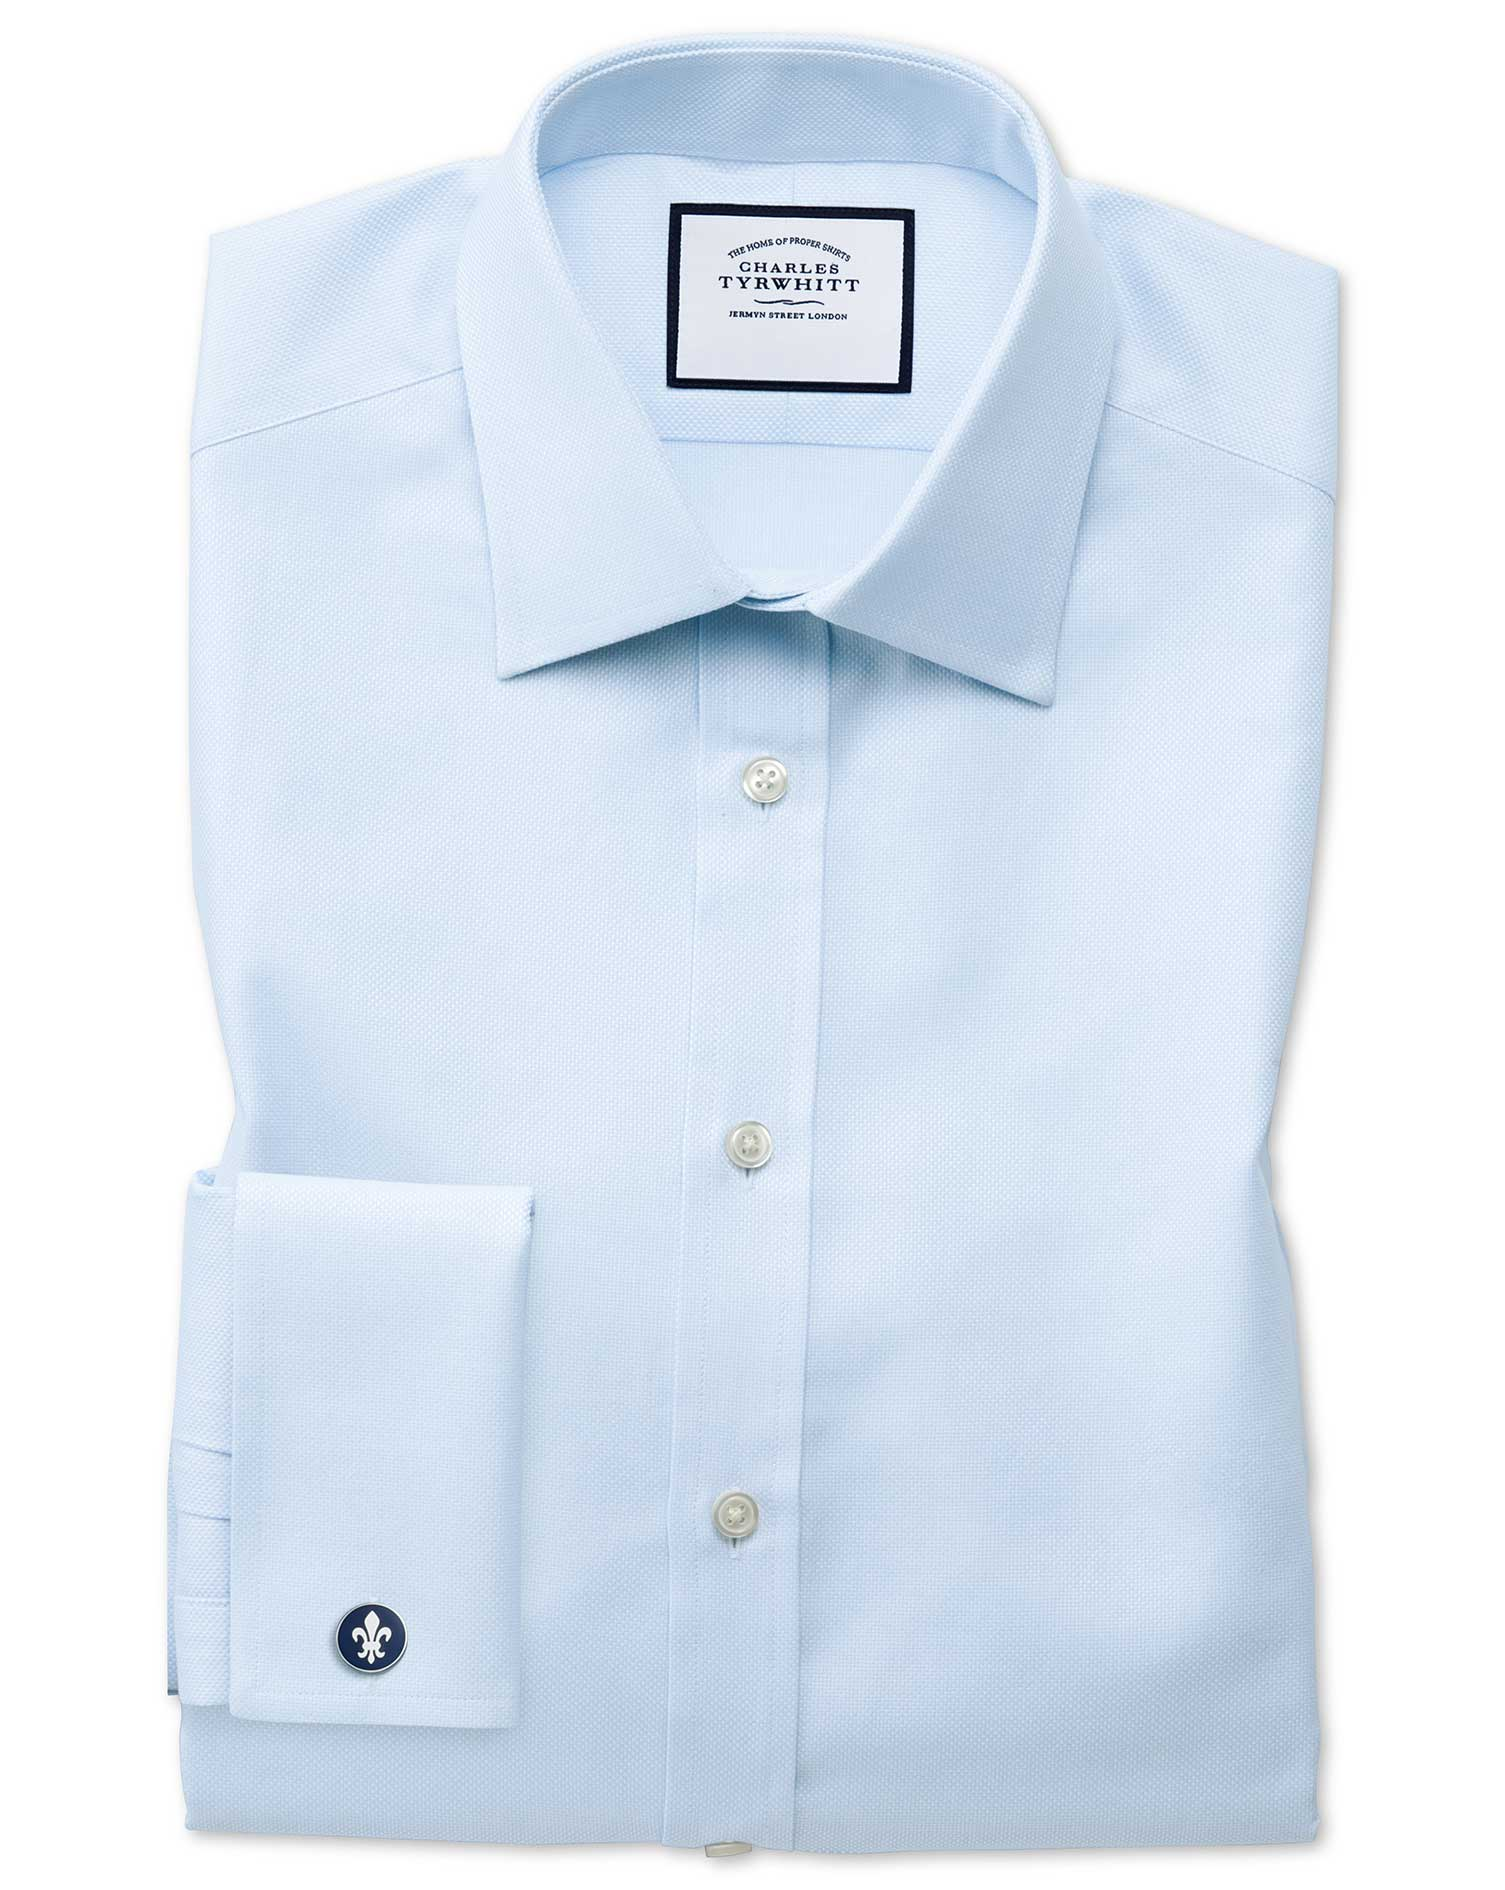 Slim Fit Egyptian Cotton Royal Oxford Sky Blue Formal Shirt Double Cuff Size 17.5/35 by Charles Tyrw